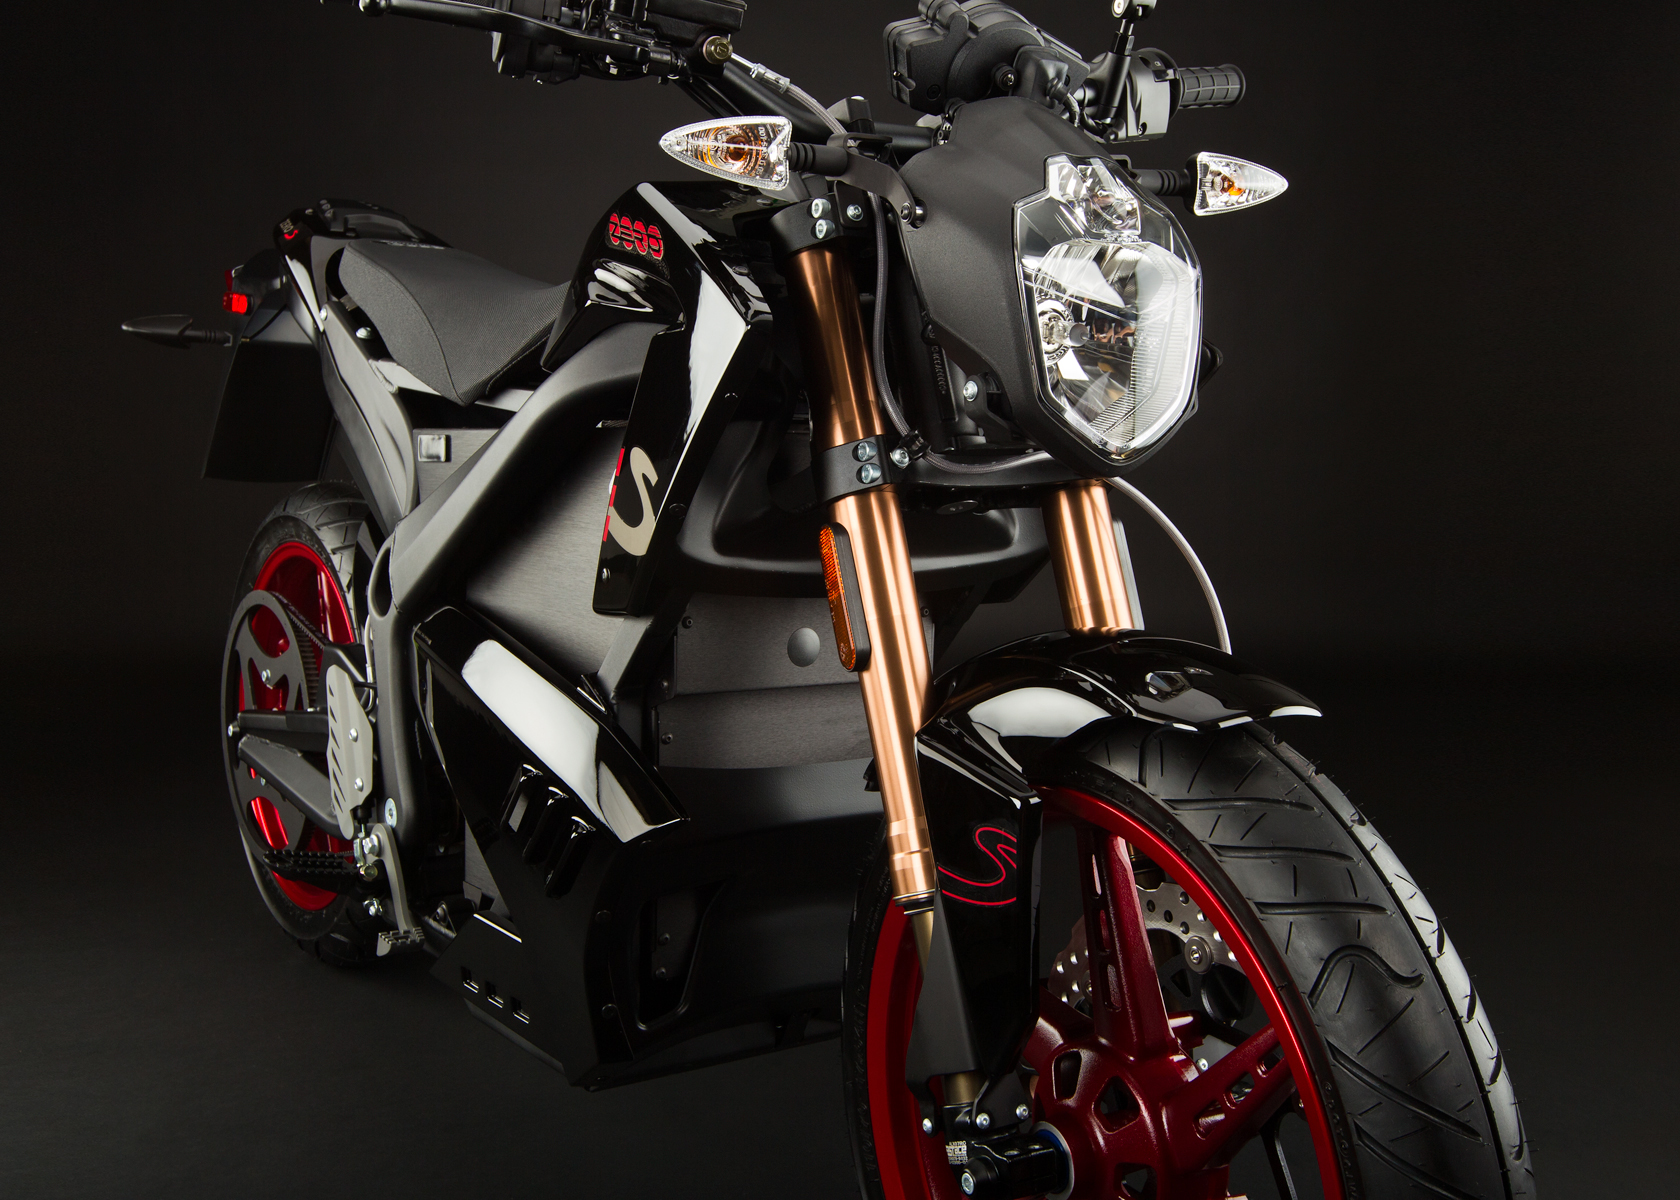 '.2012 Zero S Electric Motorcycle: Front Fork.'